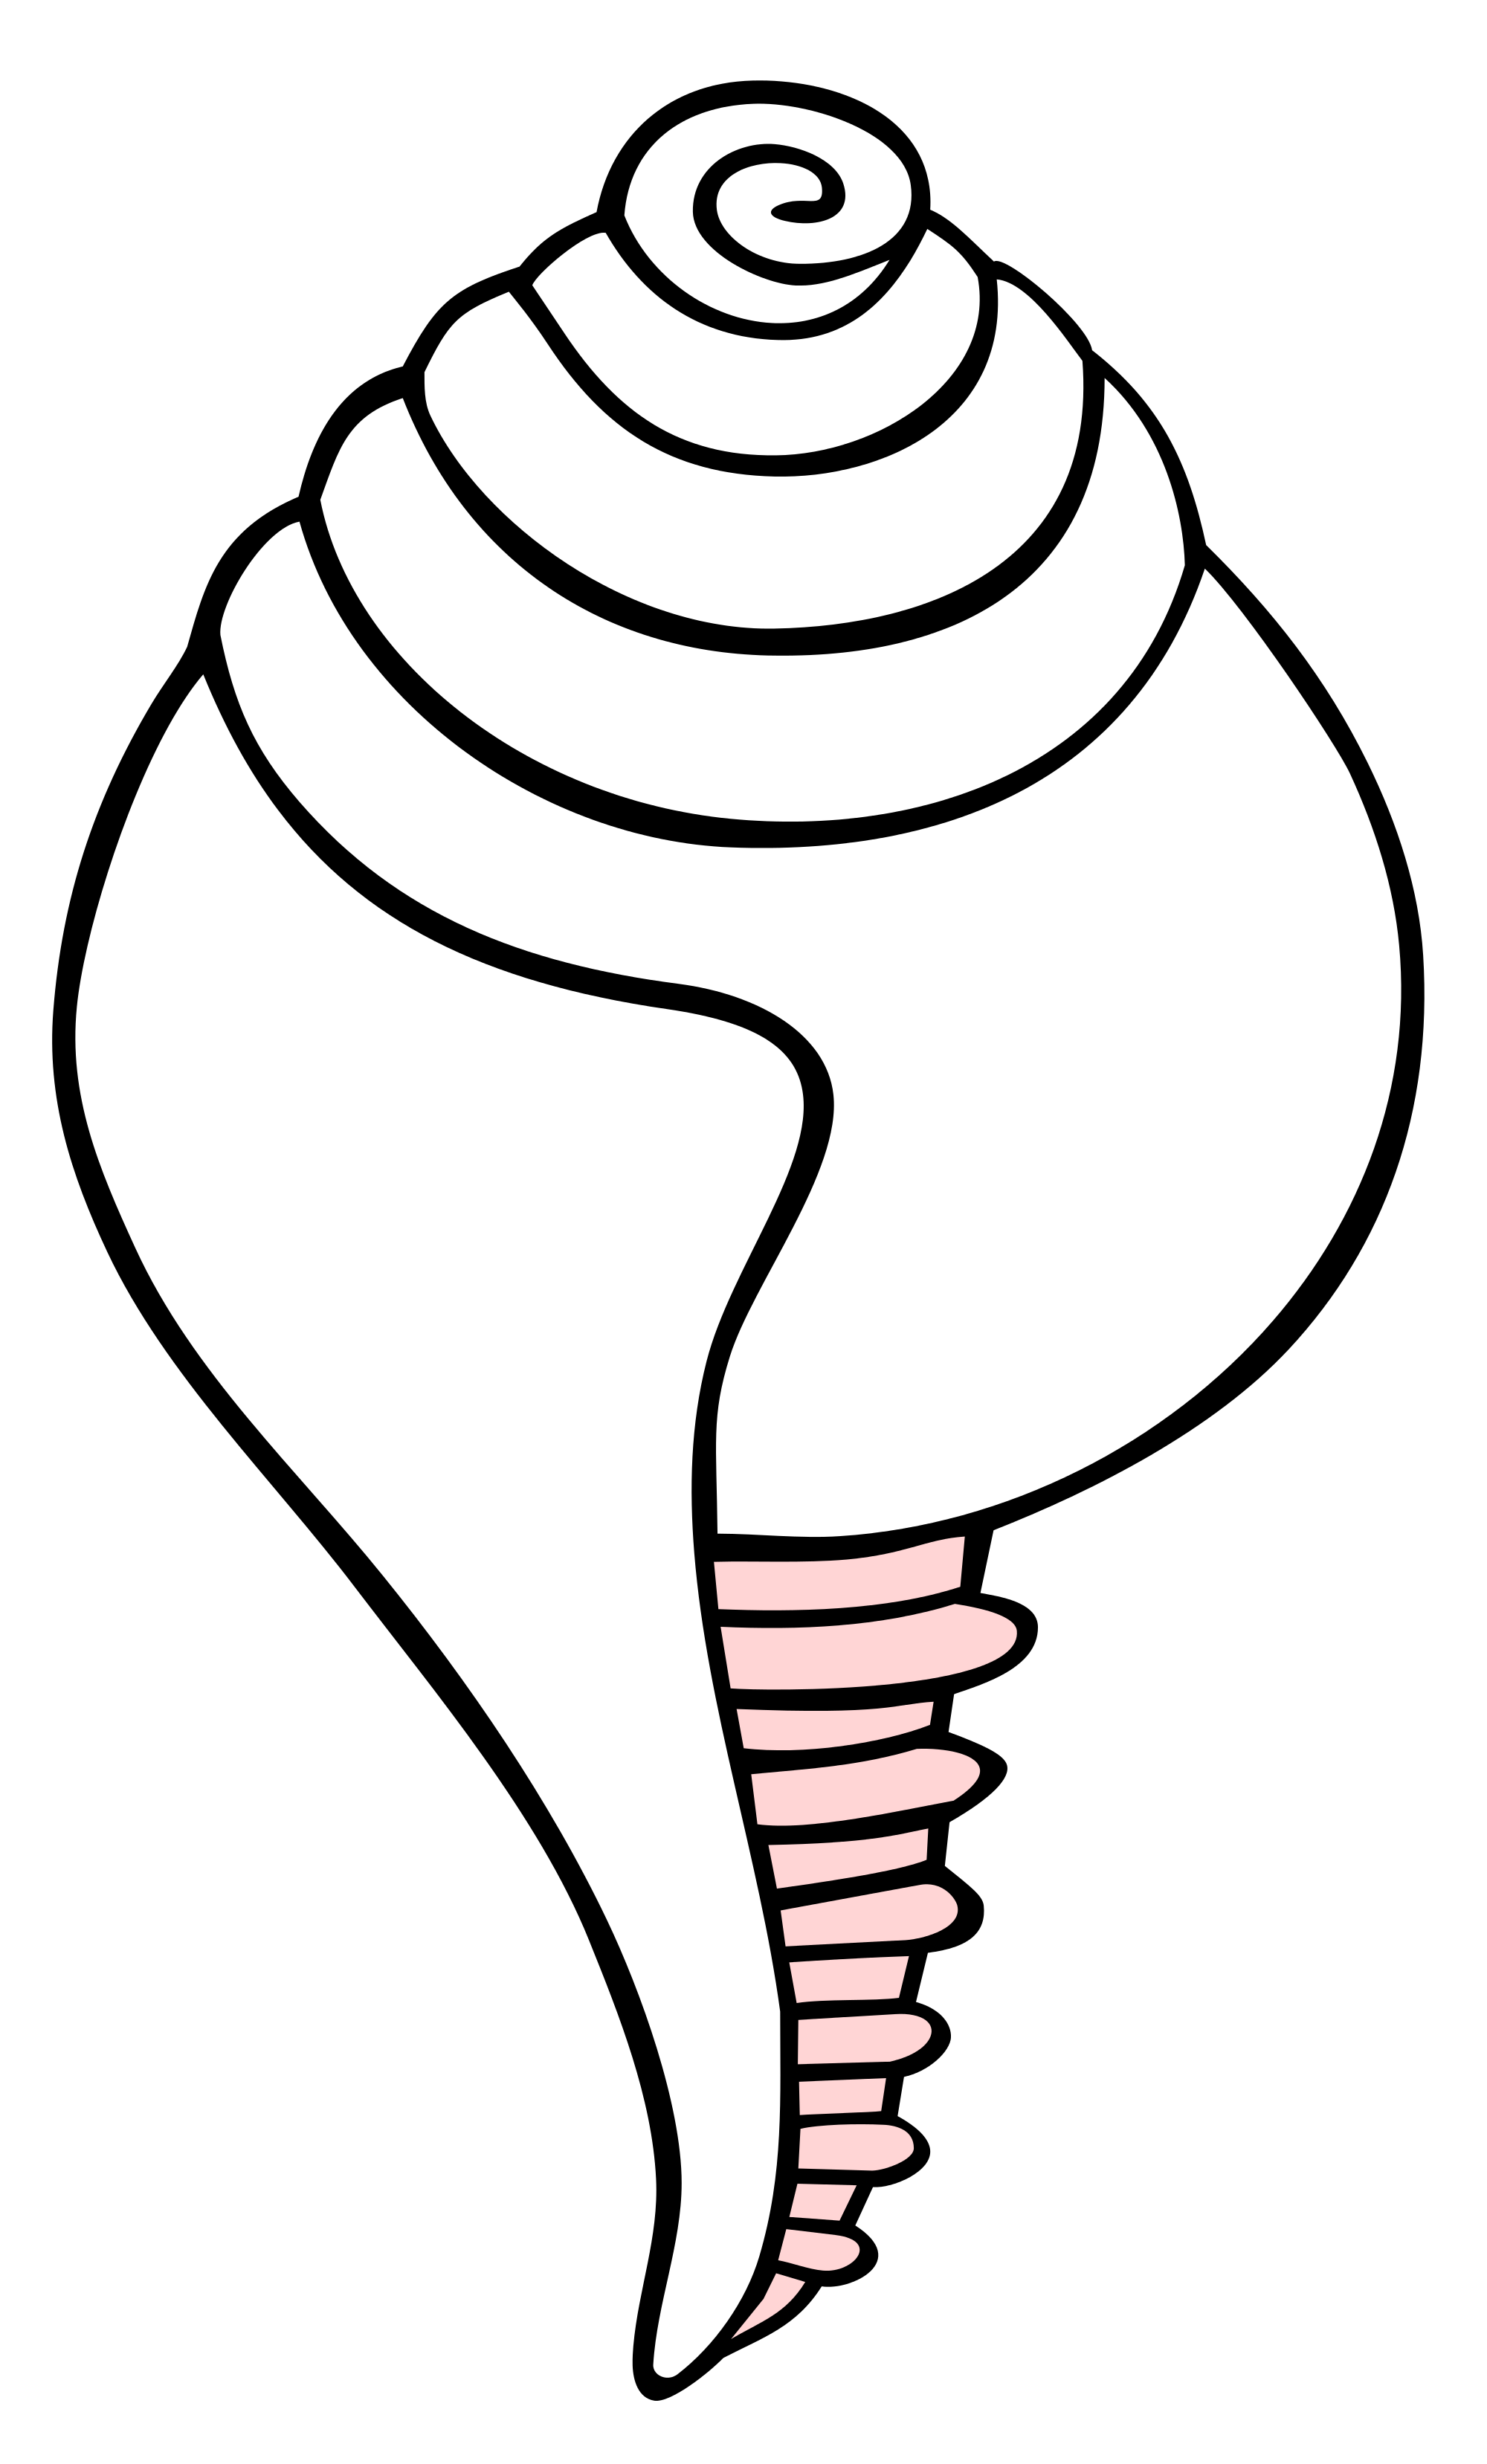 Conch svg #18, Download drawings